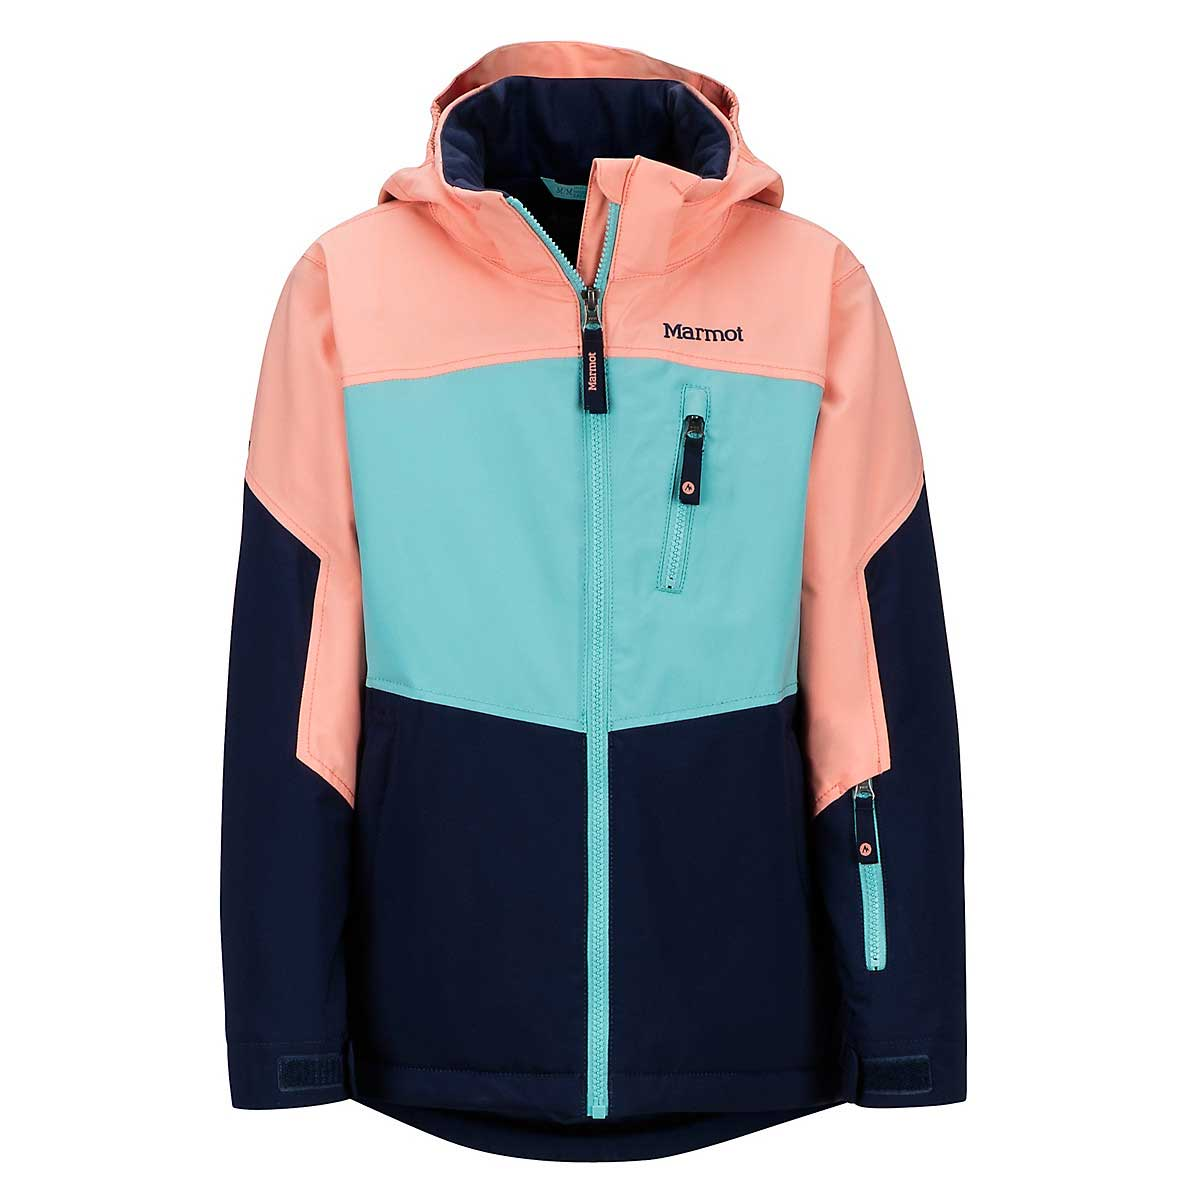 Marmot Girls' Elise Jacket in Arctic Nay and Spritzer